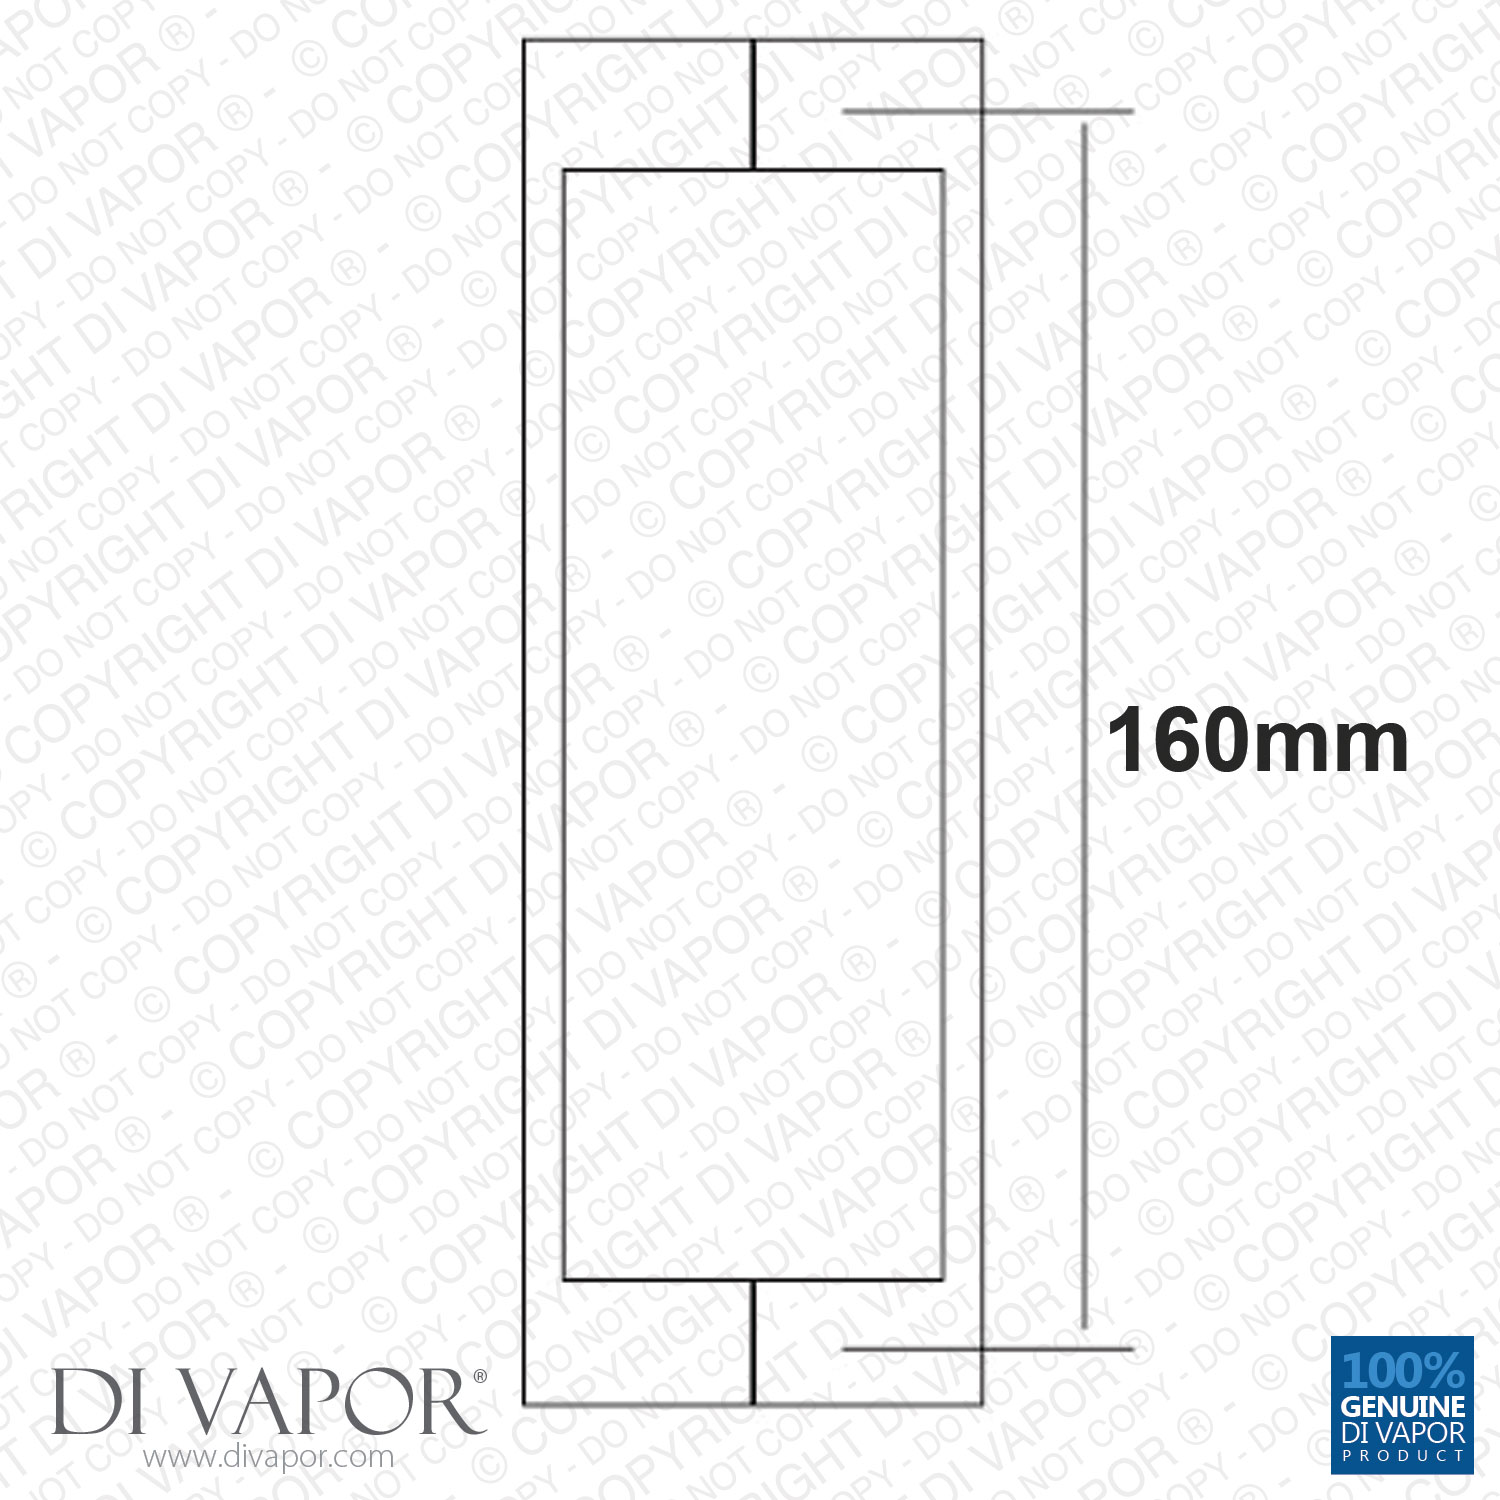 Di Vapor R 160mm Solid Stainless Steel Shower Door Handle